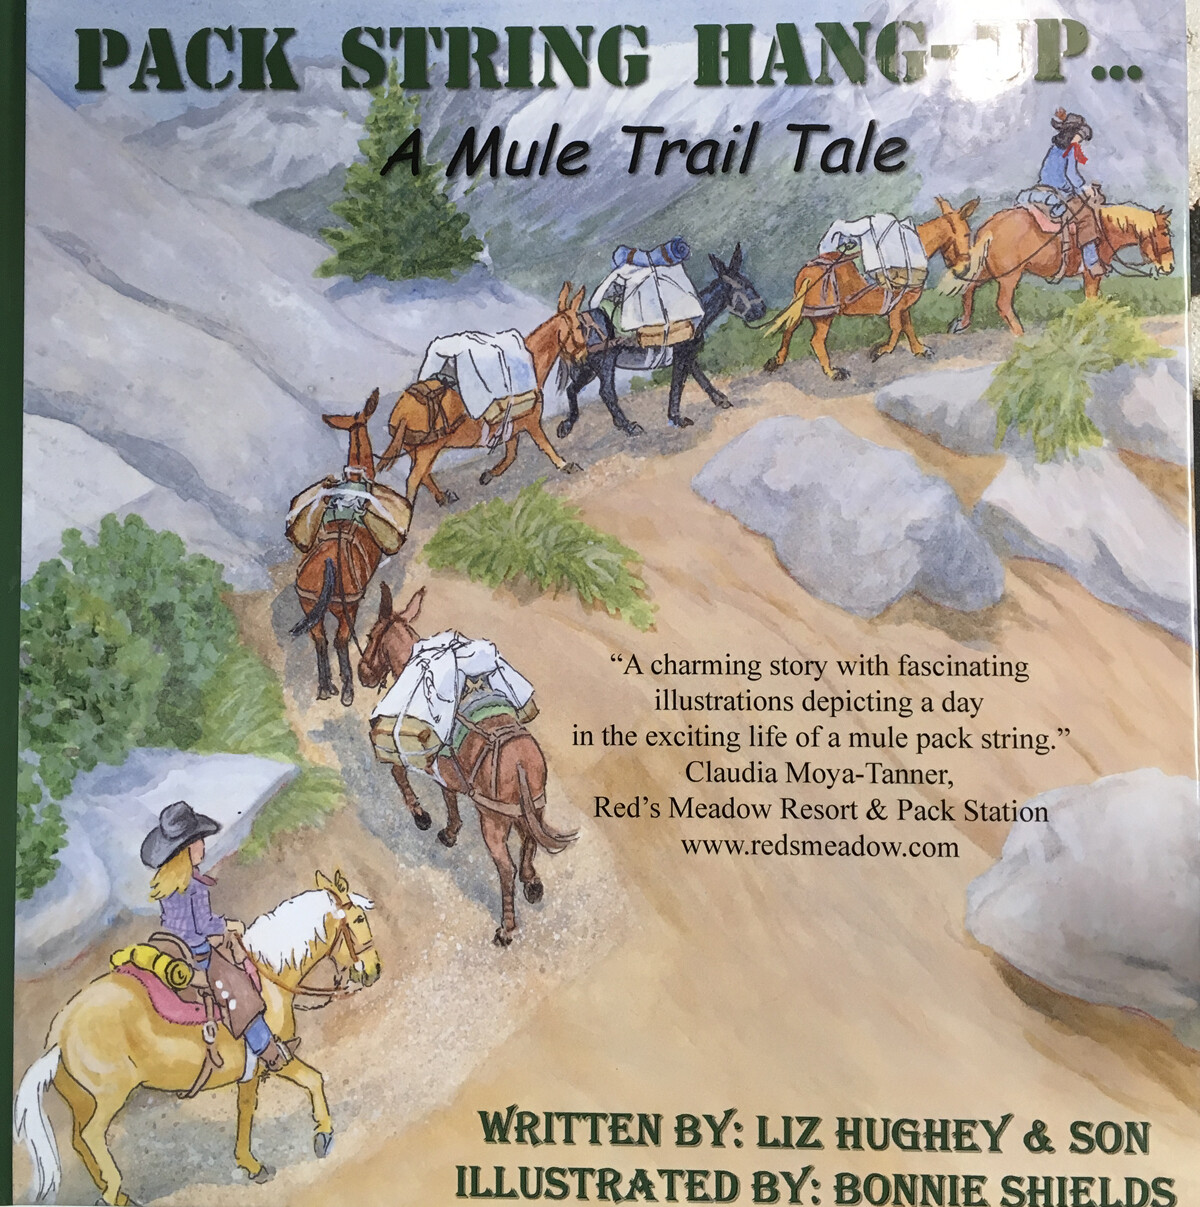 Pack string hang-up